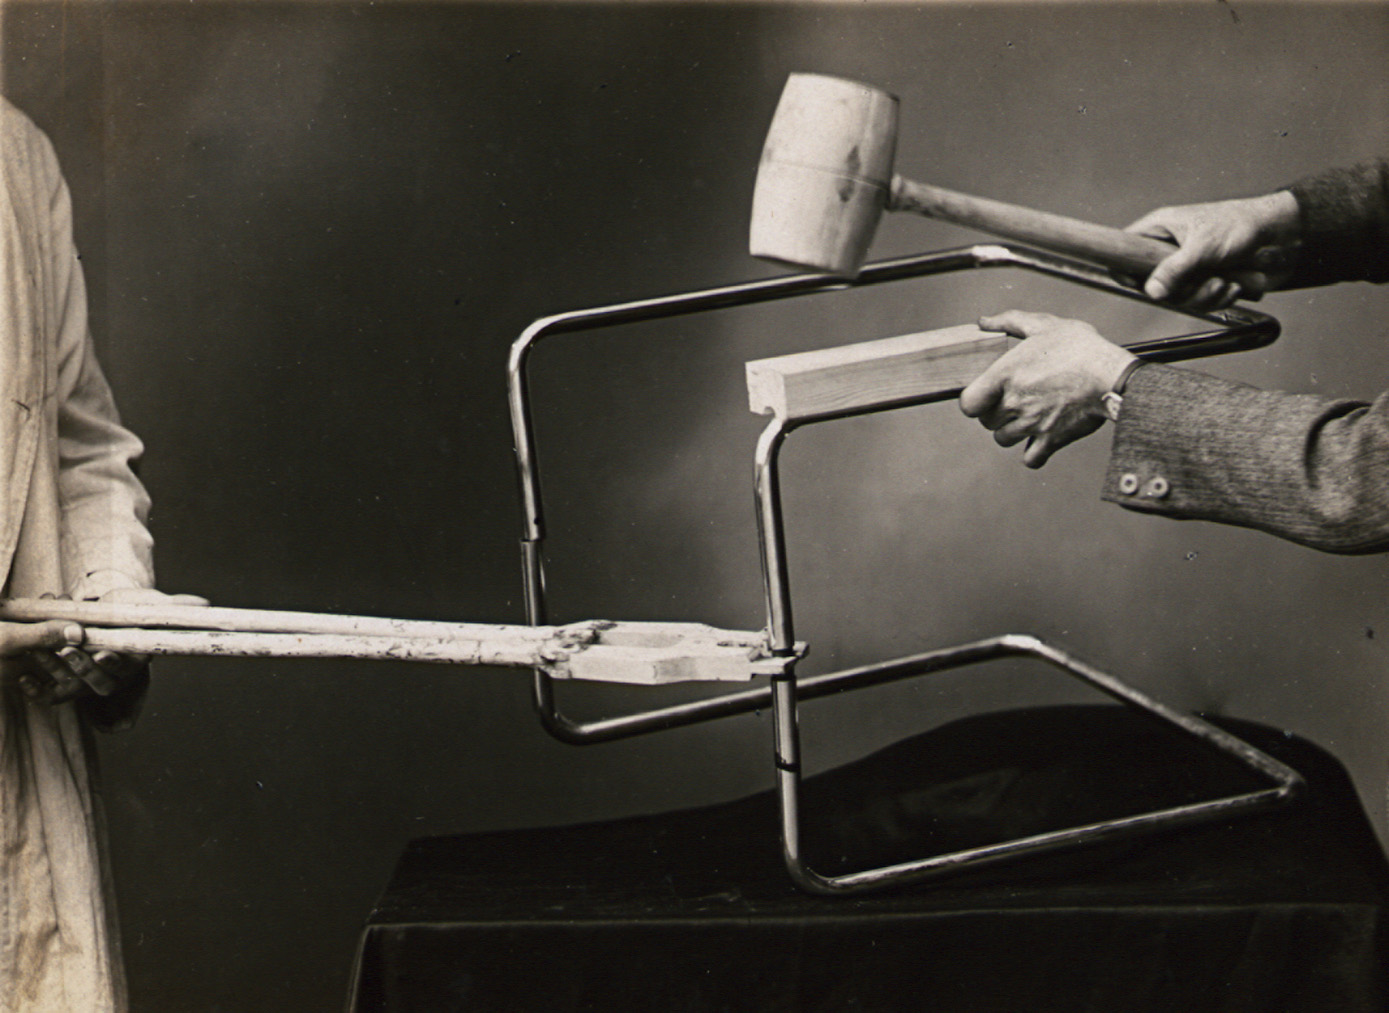 Photograph from an instruction manual for the usage of tools, Thonet brothers, 1935. Collection Alexander von Vegesack, Domaine de Boisbuchet.